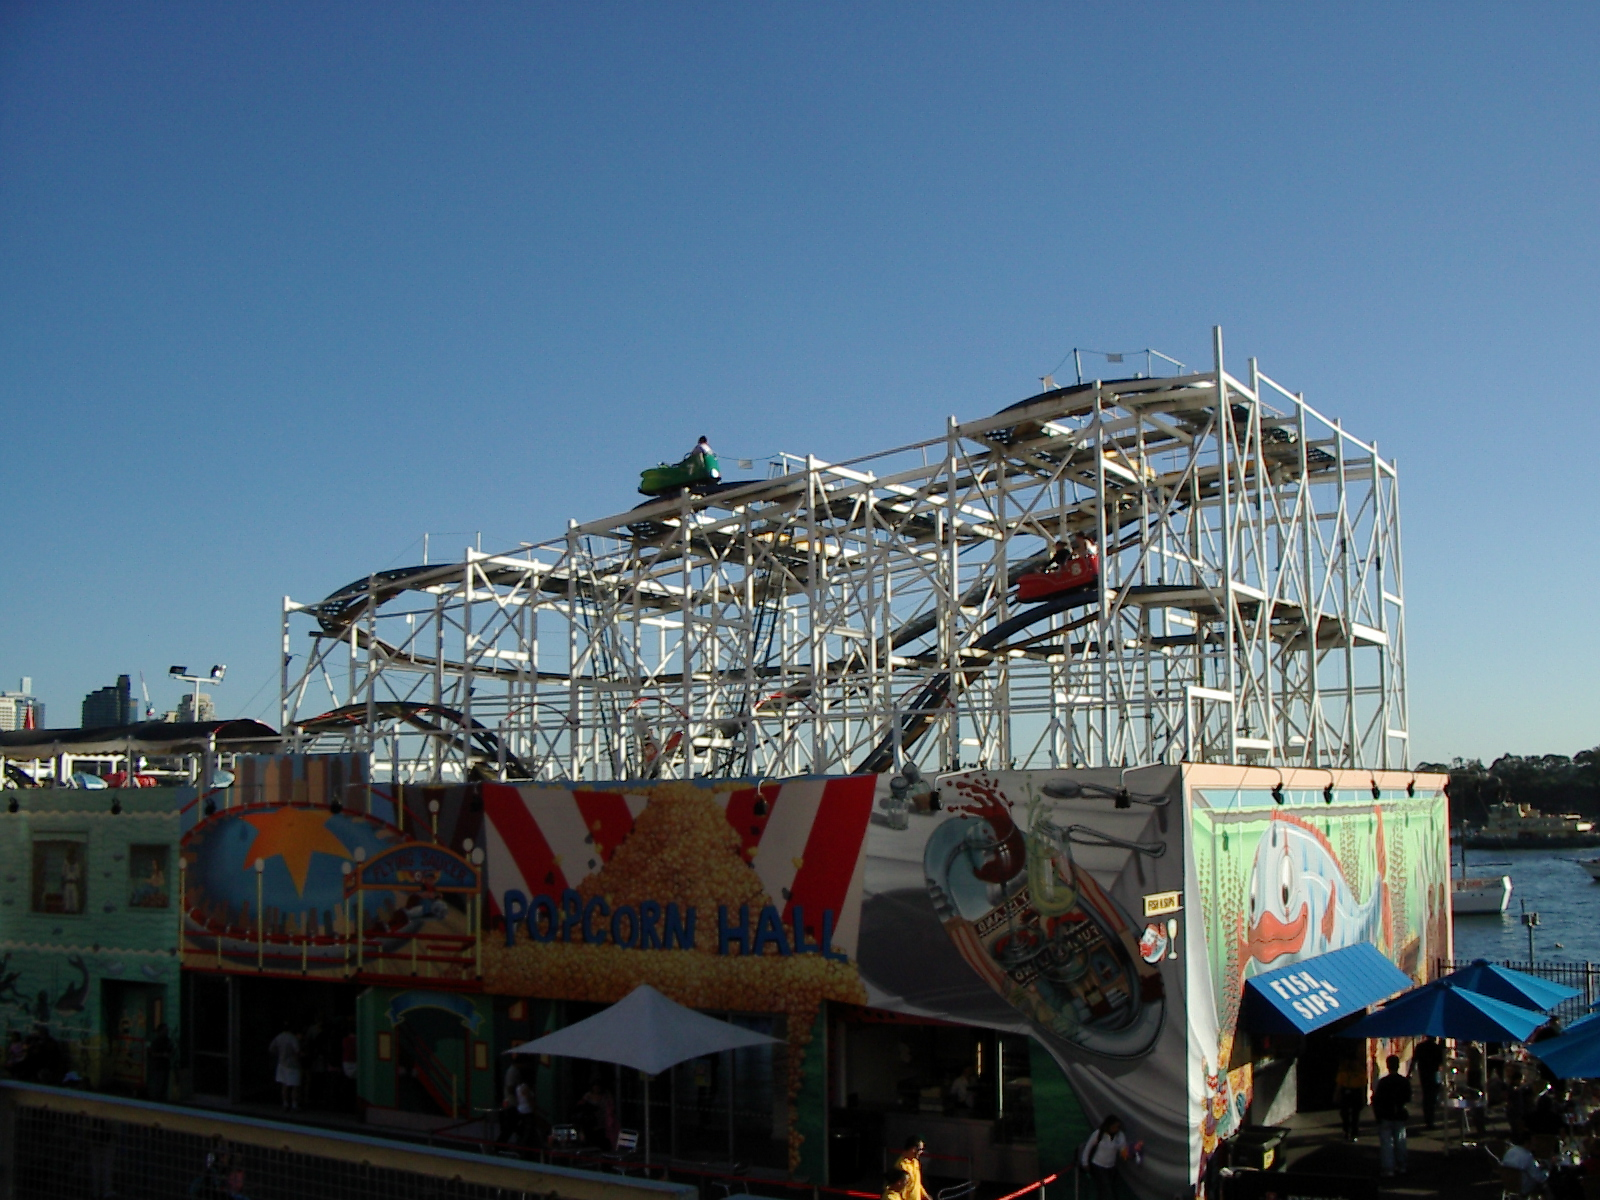 Spinning Wild Mouse Myrtle Beach